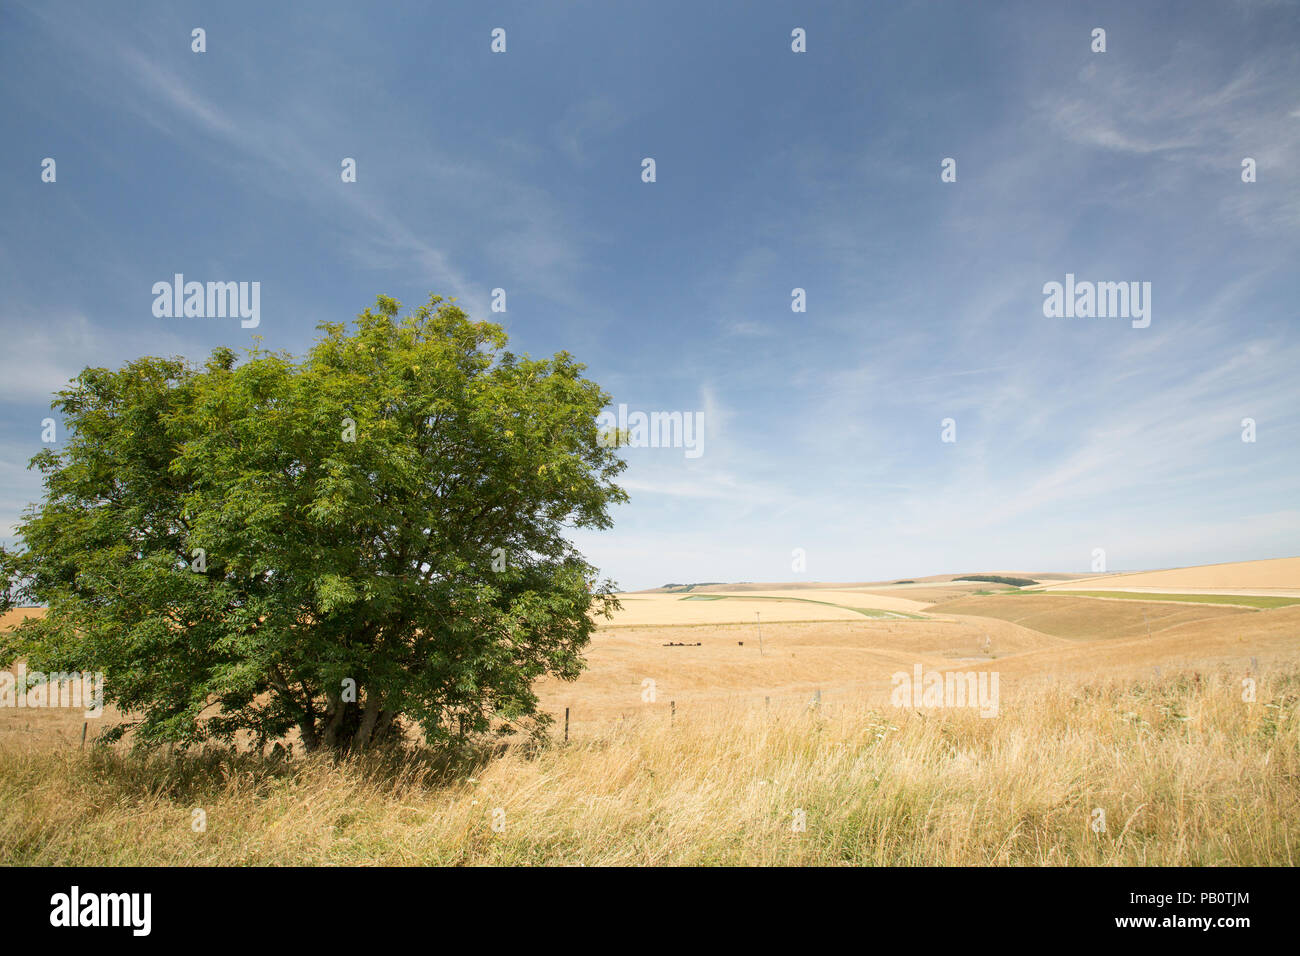 A view of the Wiltshire landscape above the small town of Mere during the UK 2018 heatwave showing a solitary ash tree and dried grass and farmers' cr - Stock Image